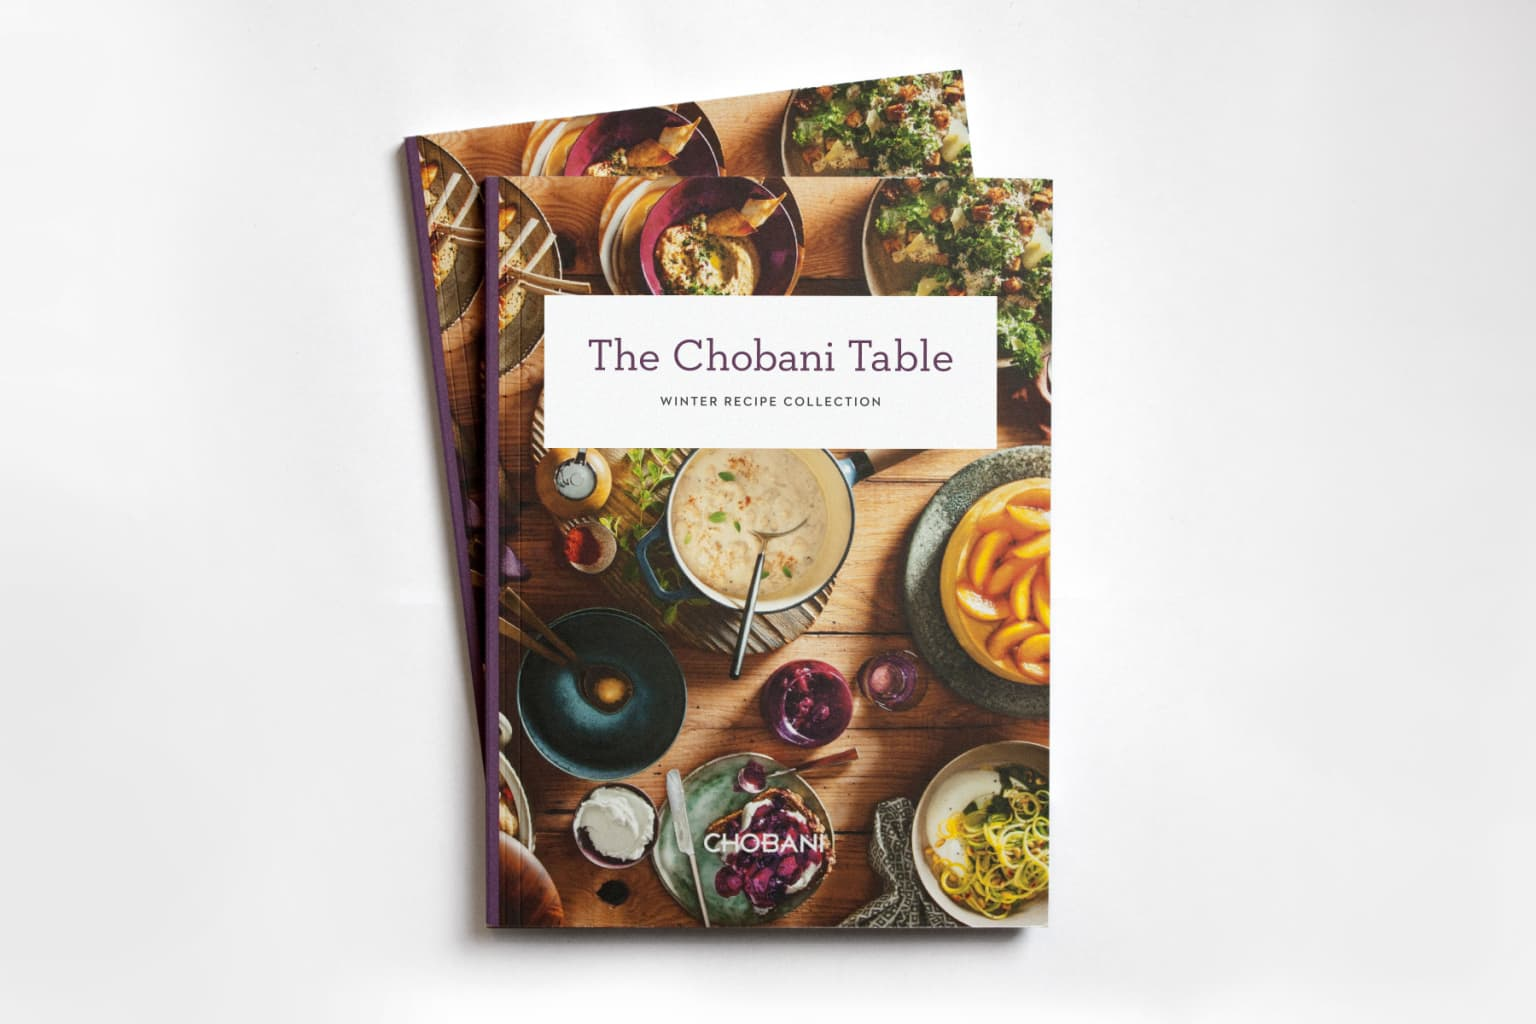 The Chobani Table Recipe Collection